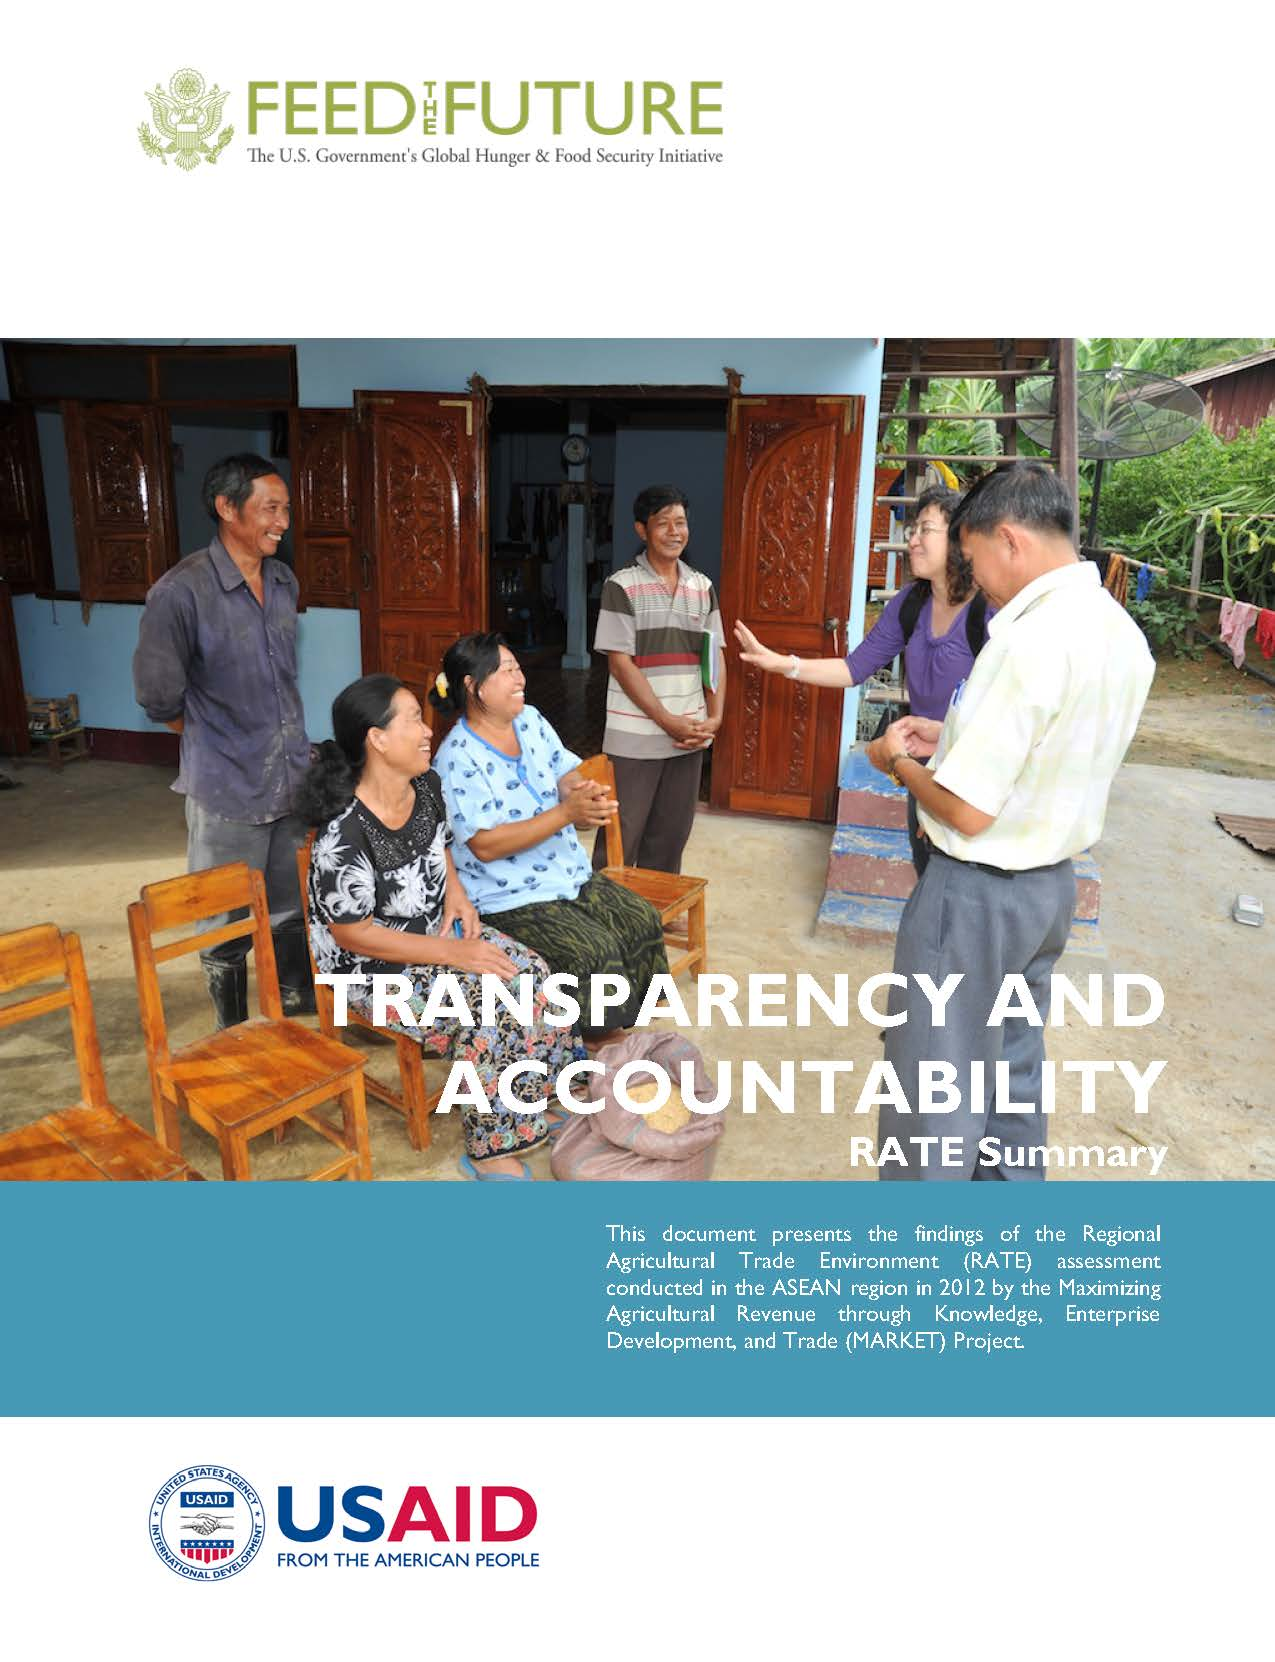 Regional Agriculture Trade Environment Transparency and Accountability Report